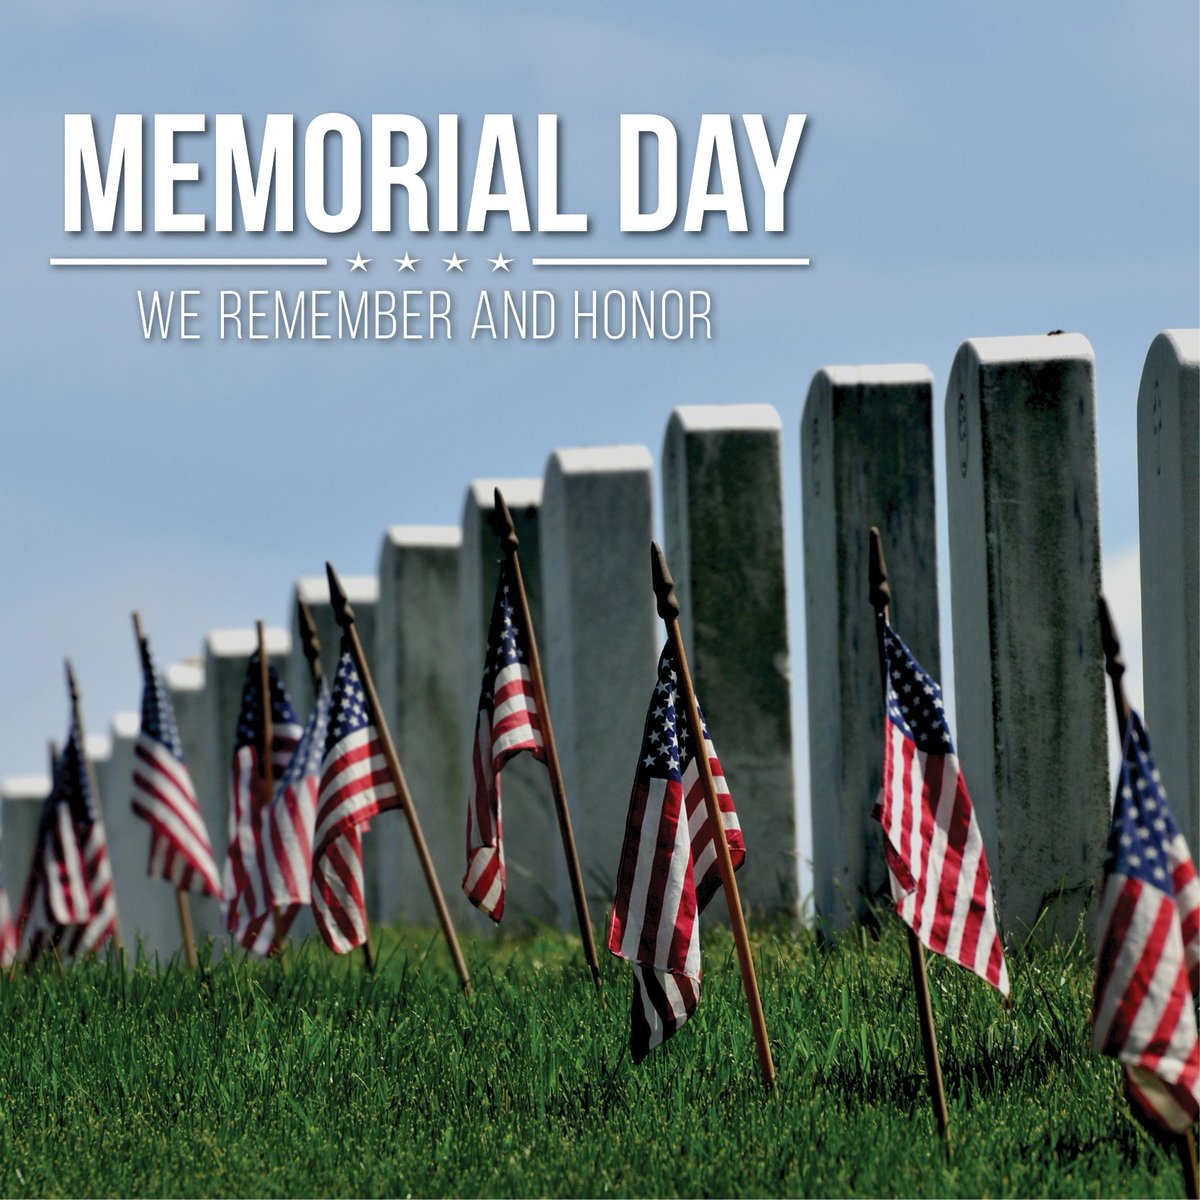 Today, we remember those who have given their life in service to this country. #MemorialDay2018